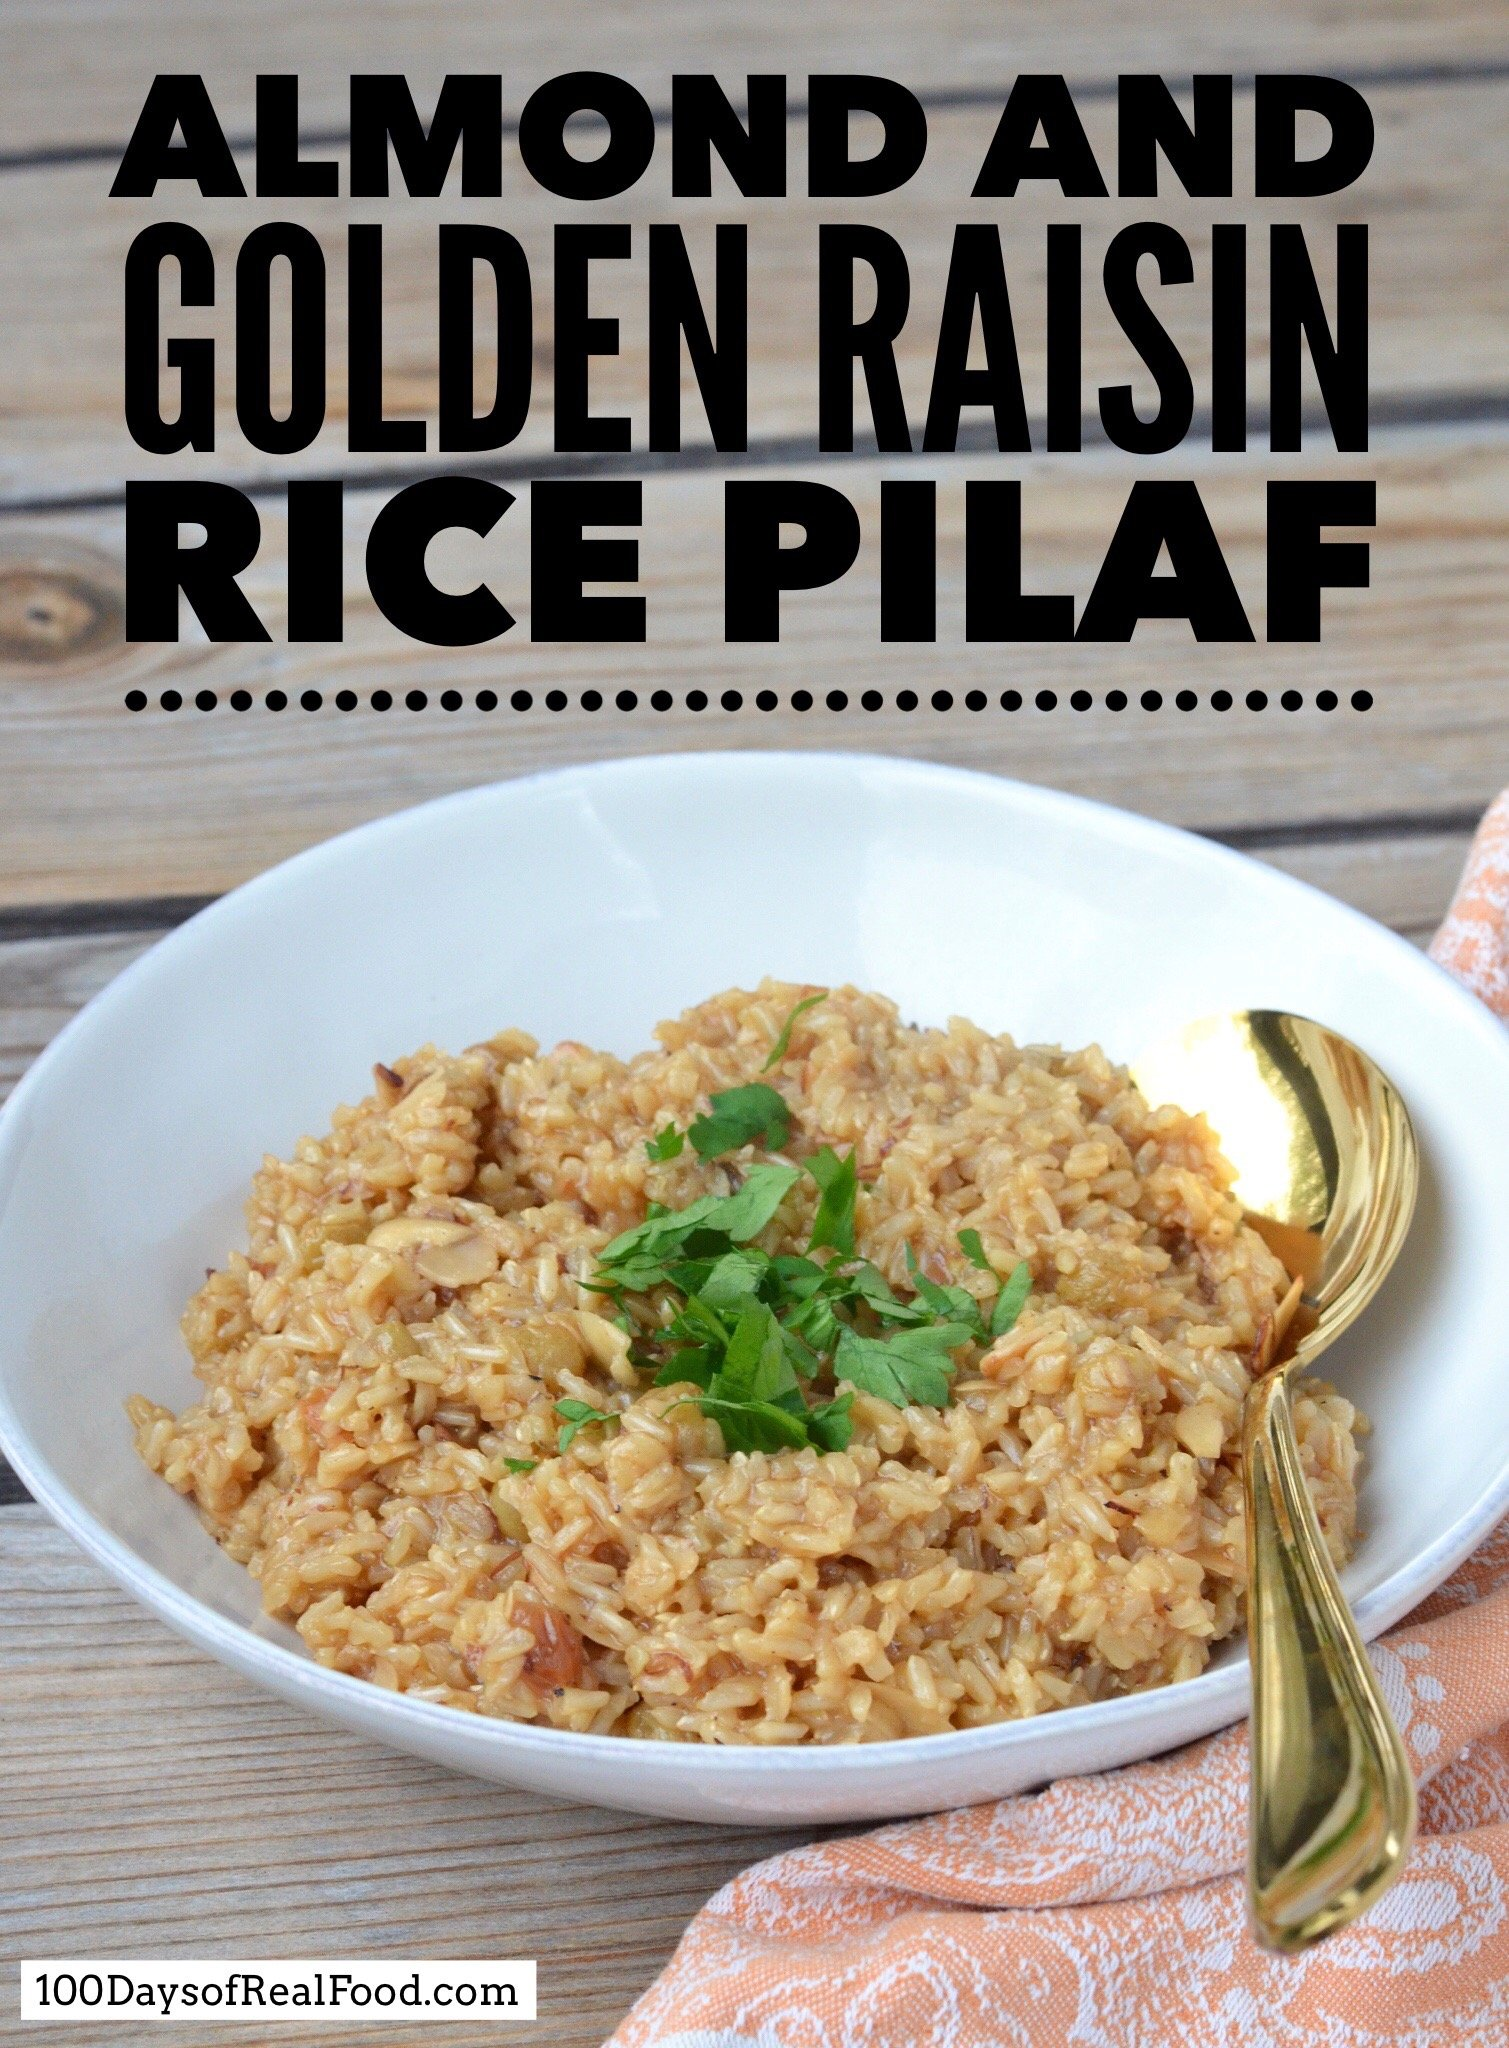 Almond and Golden Raisin Rice Pilaf on 100 Days of Real Food